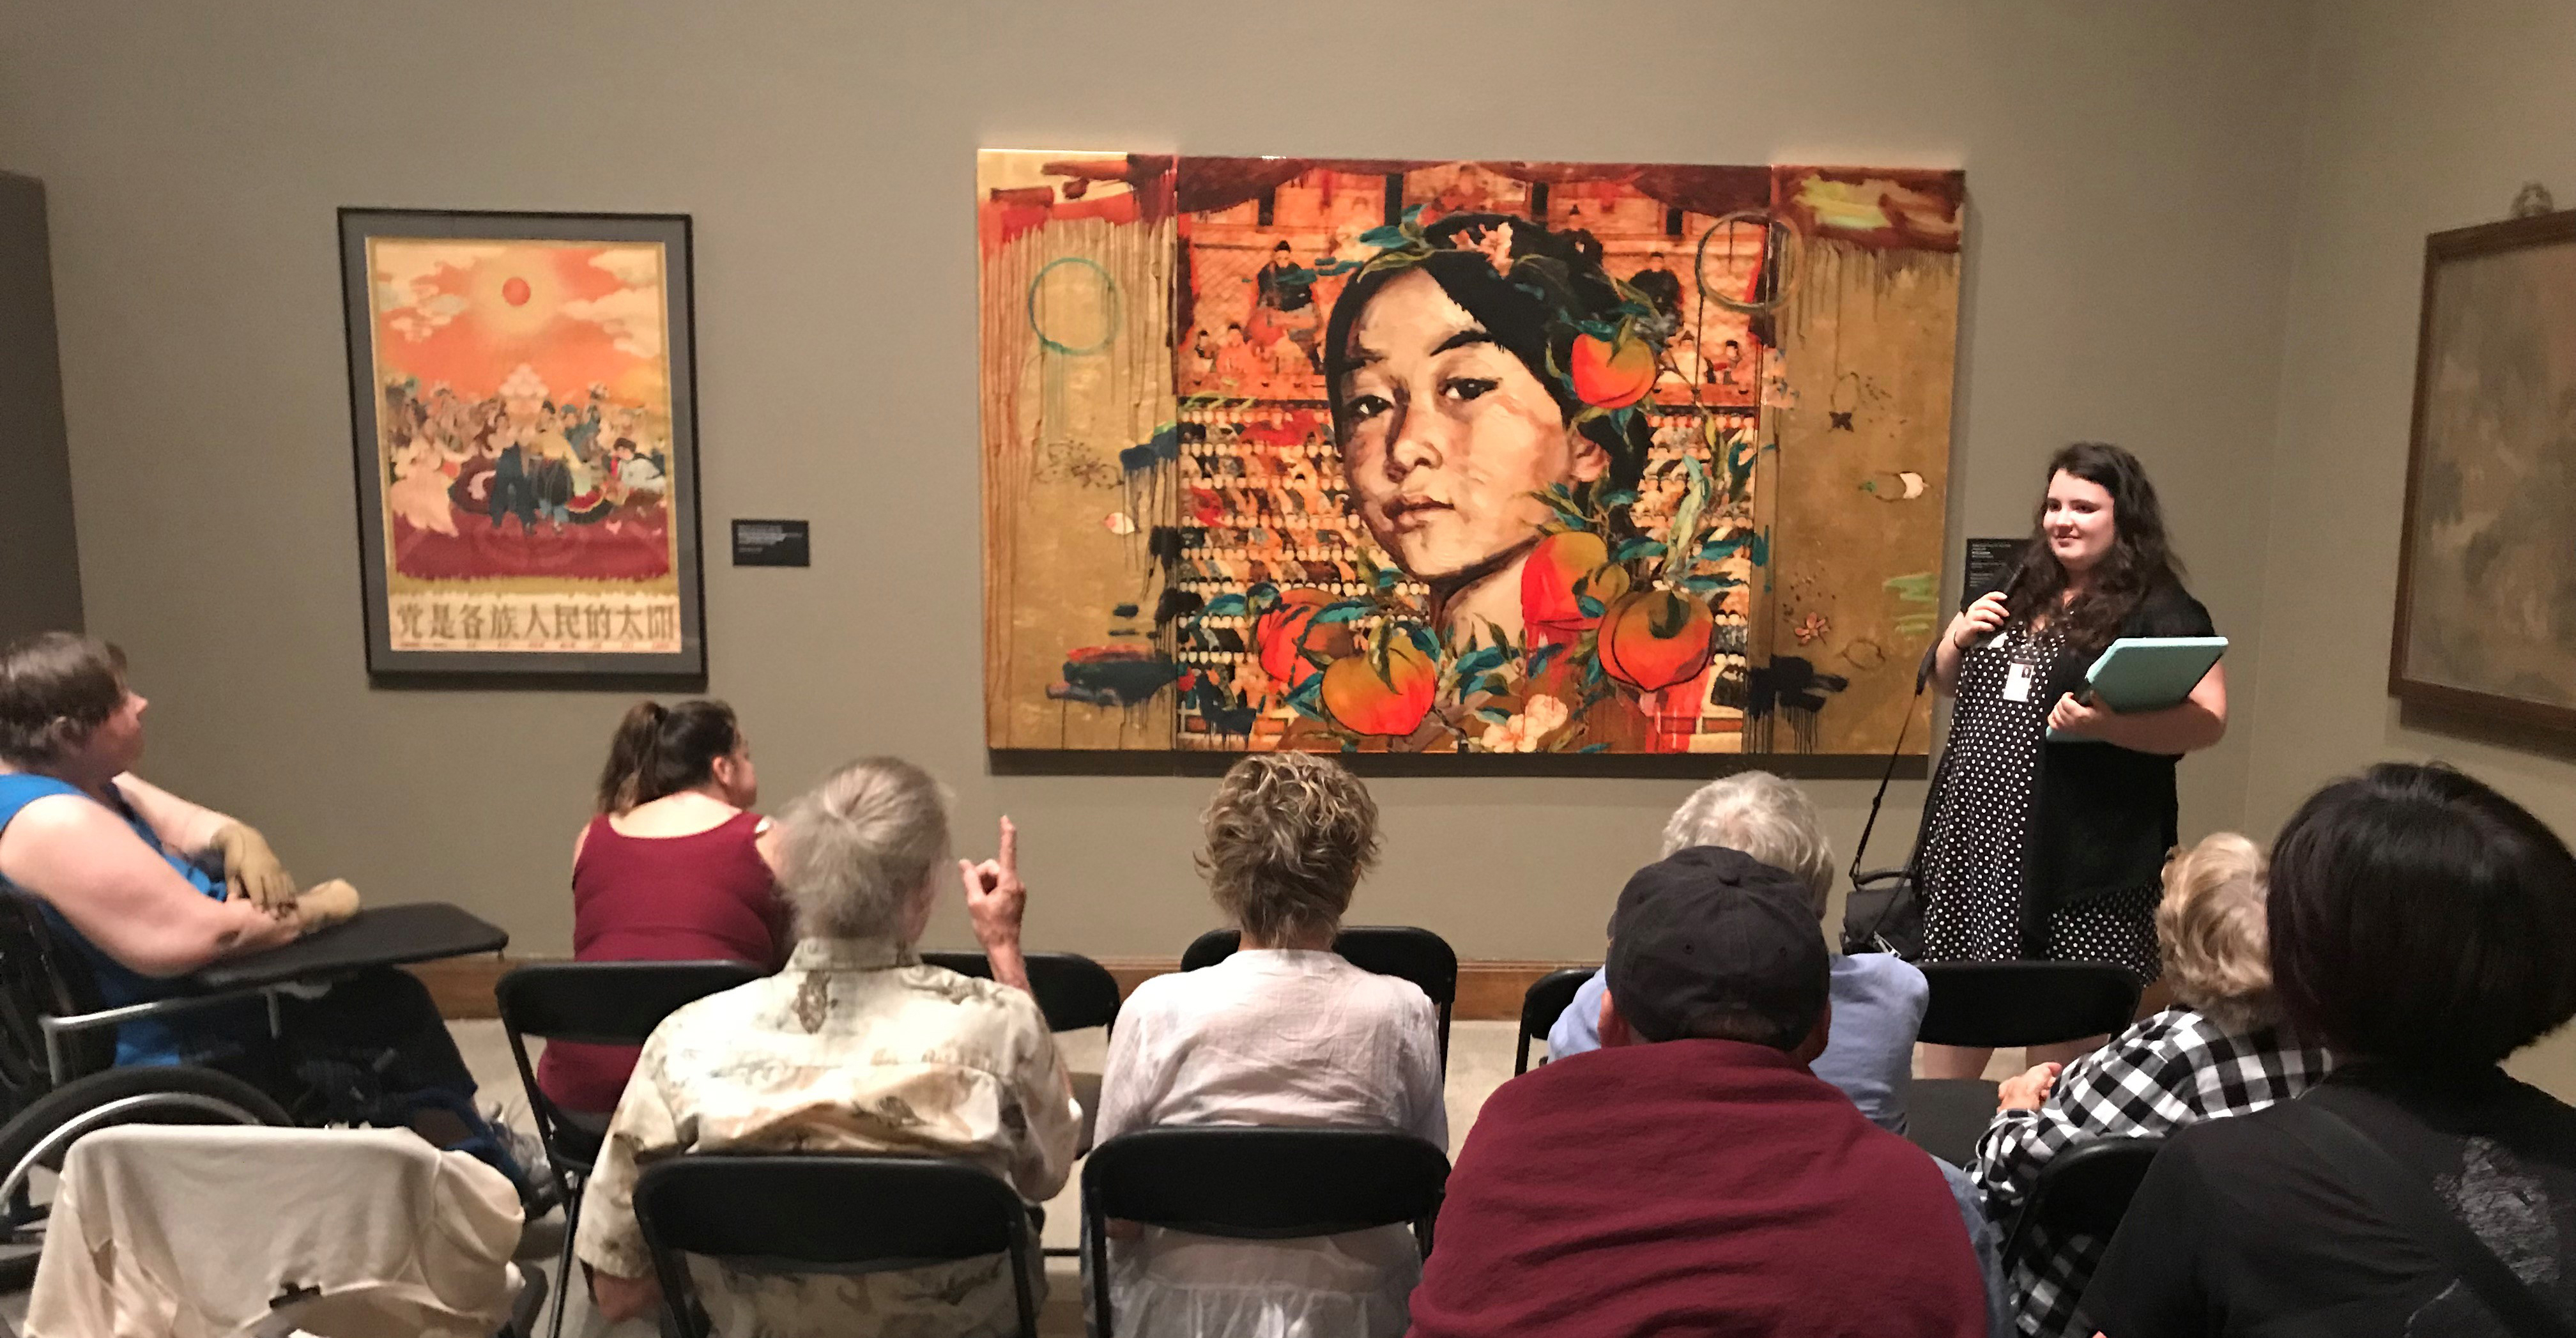 Figure 3. Facilitated by a museum docent, adult viewers discuss a 2011 mixed-media triptych print,All the Ancestors, by Chinese-American Hung Liu from the University of Oregon Jordan Schnitzer Museum of Art collection.